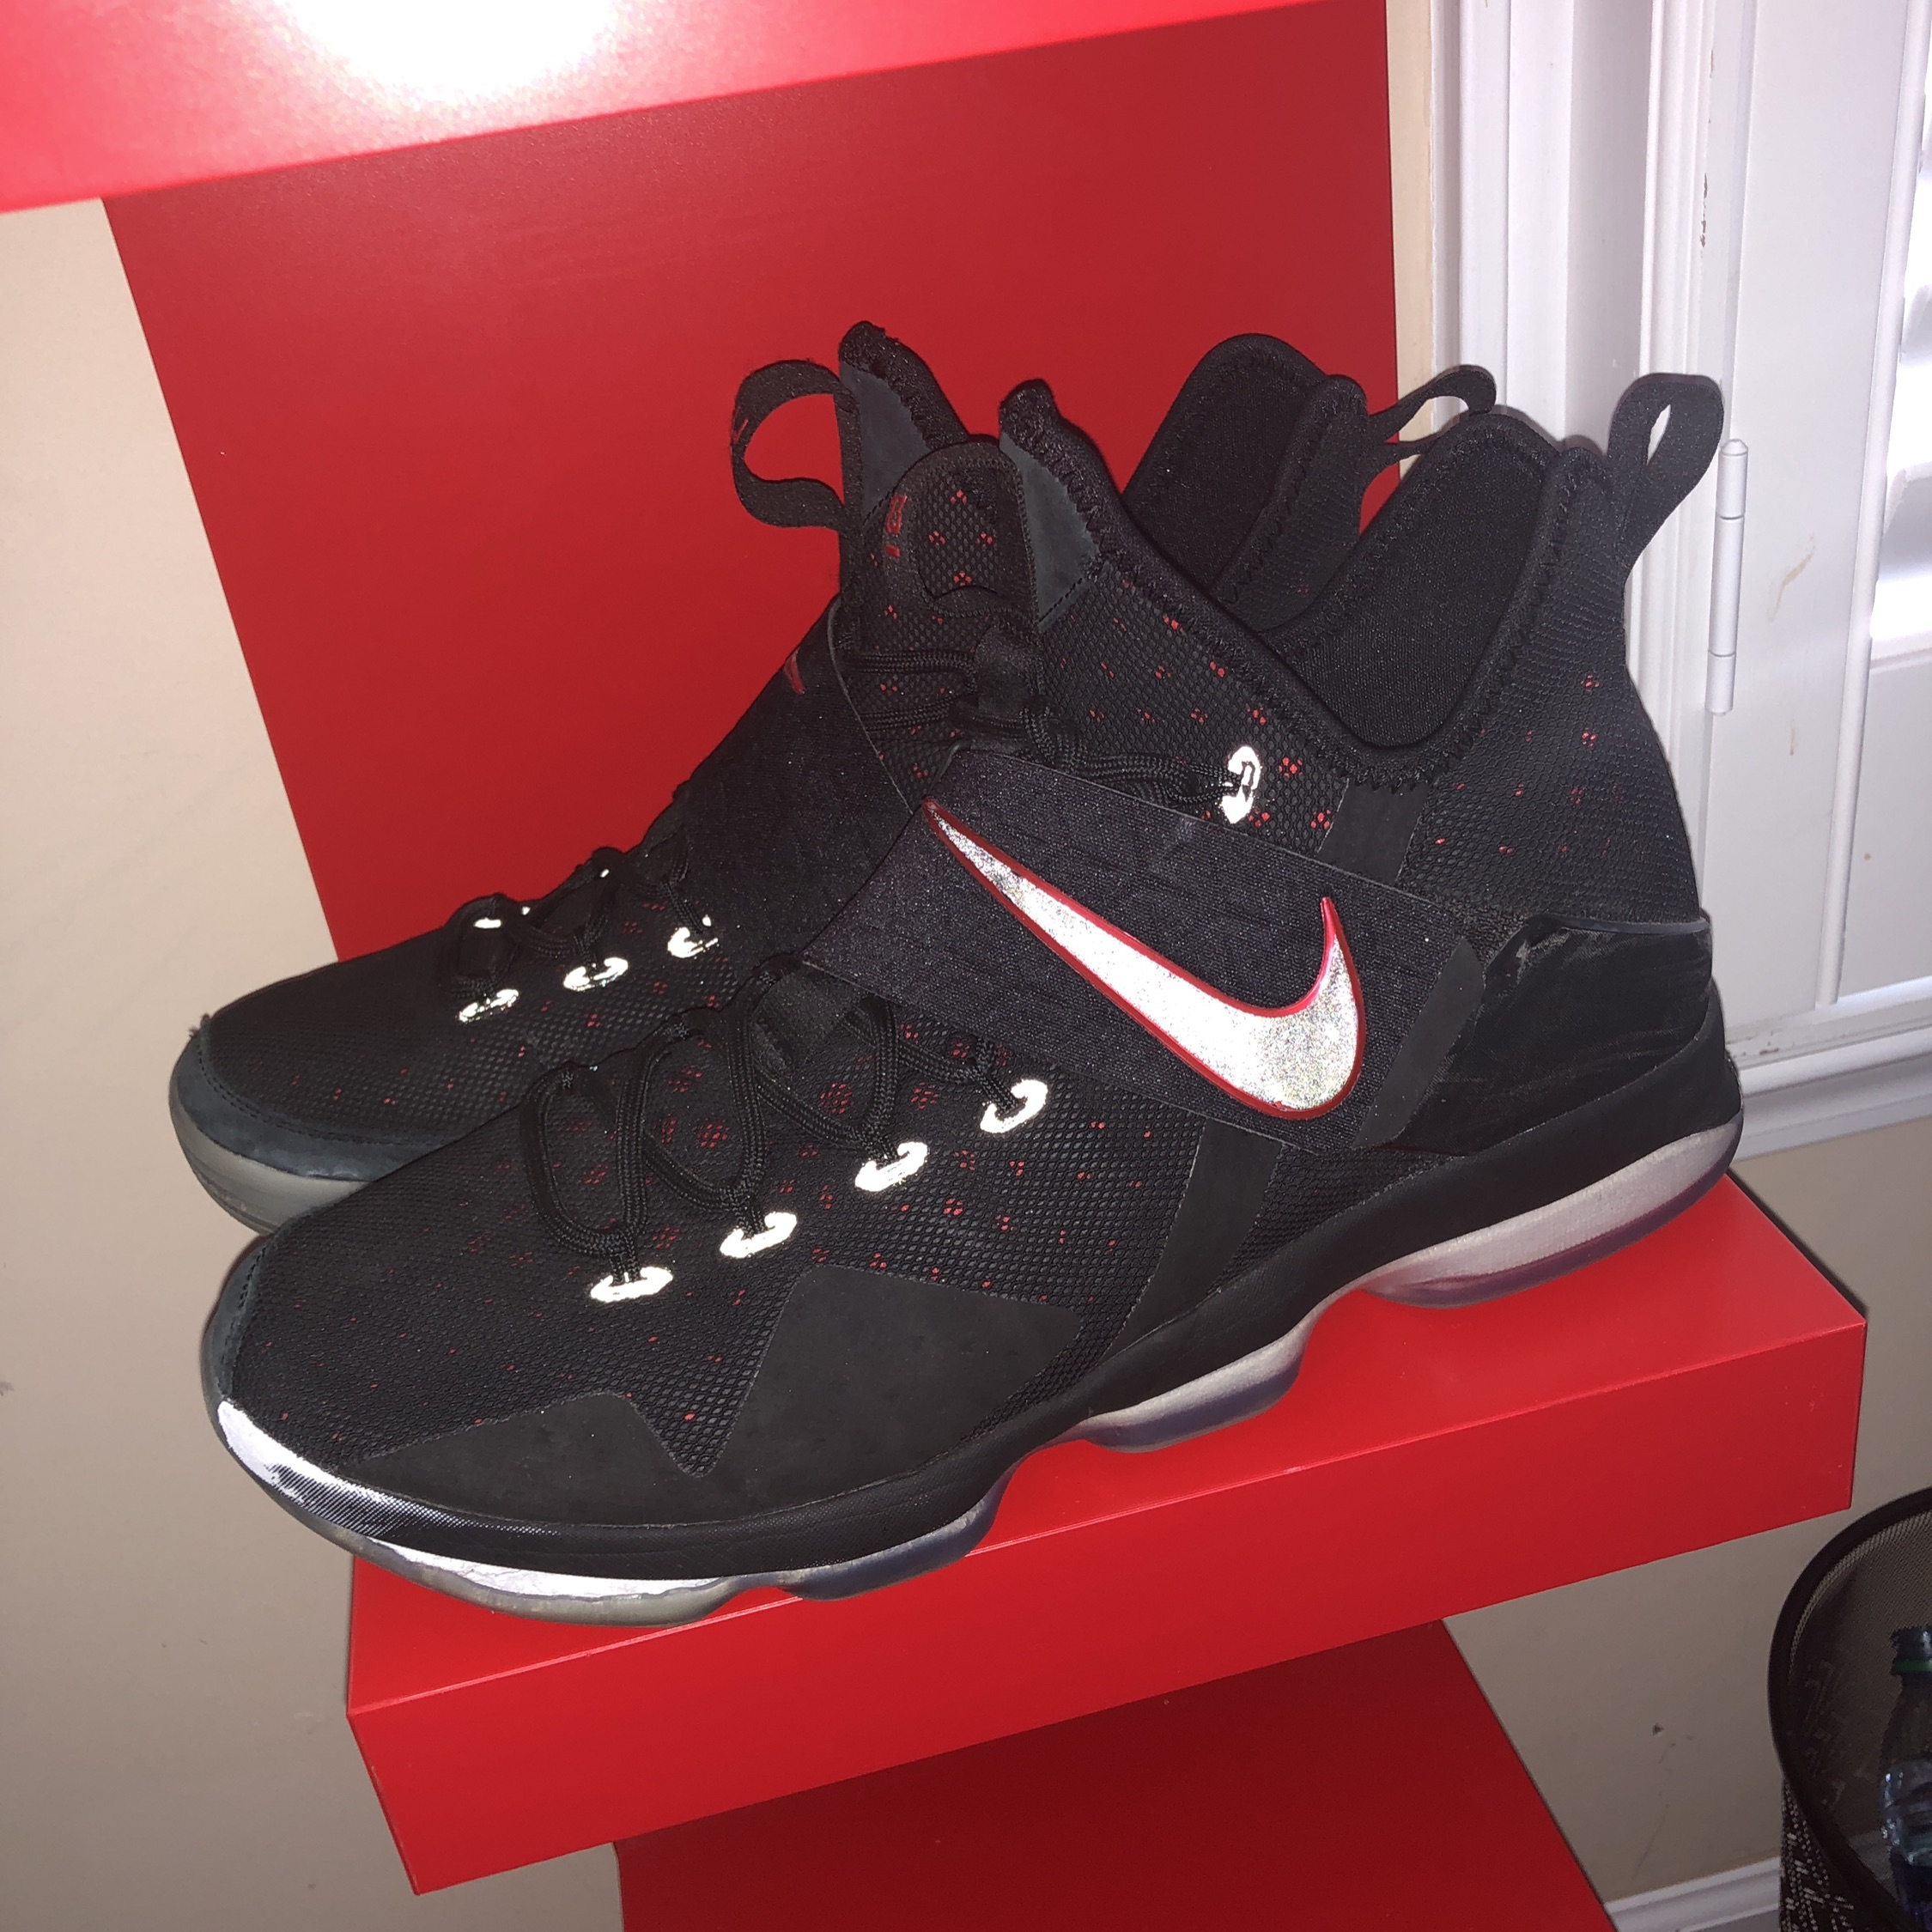 Lebron 14S 'Bred' Great Condition